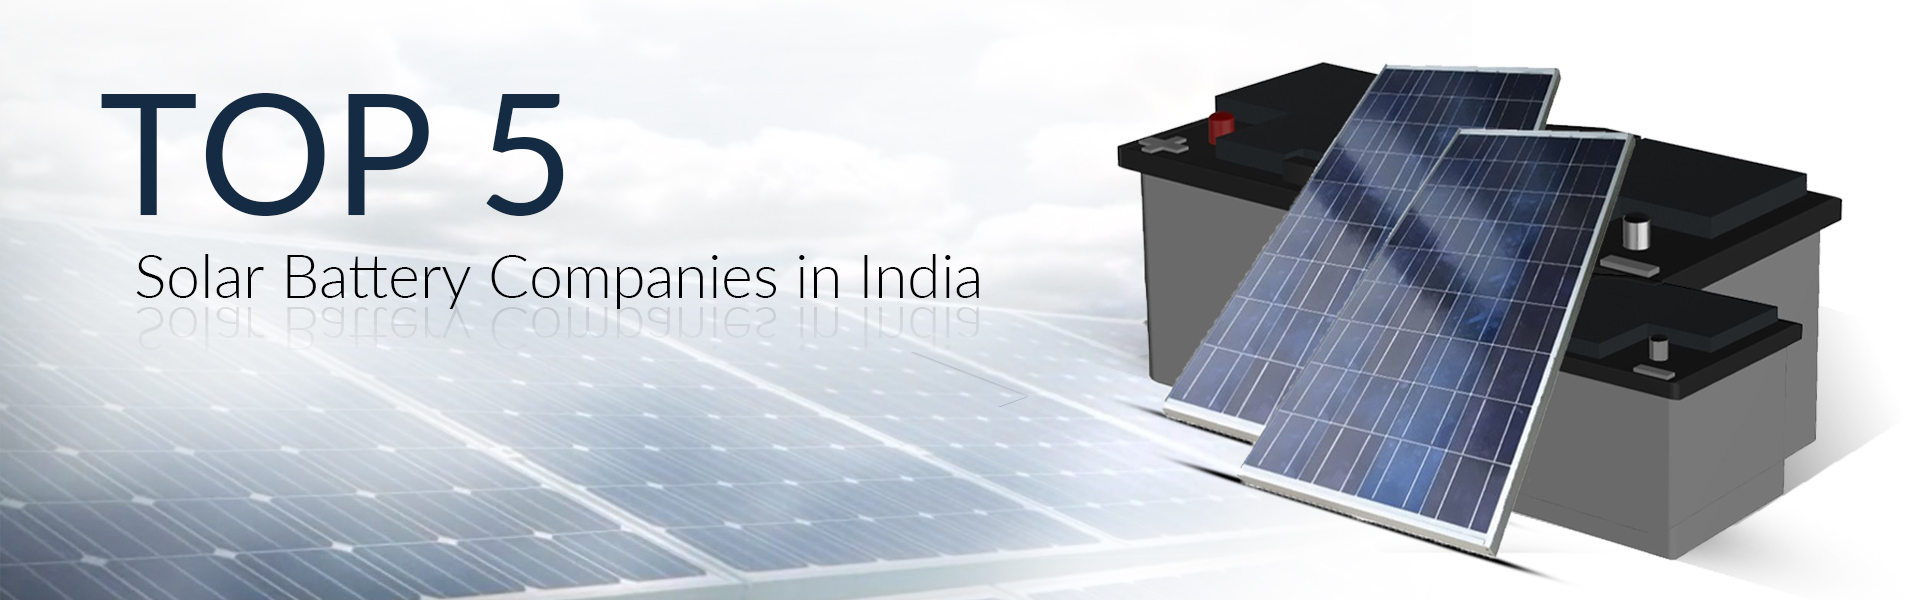 solar battery companies in india